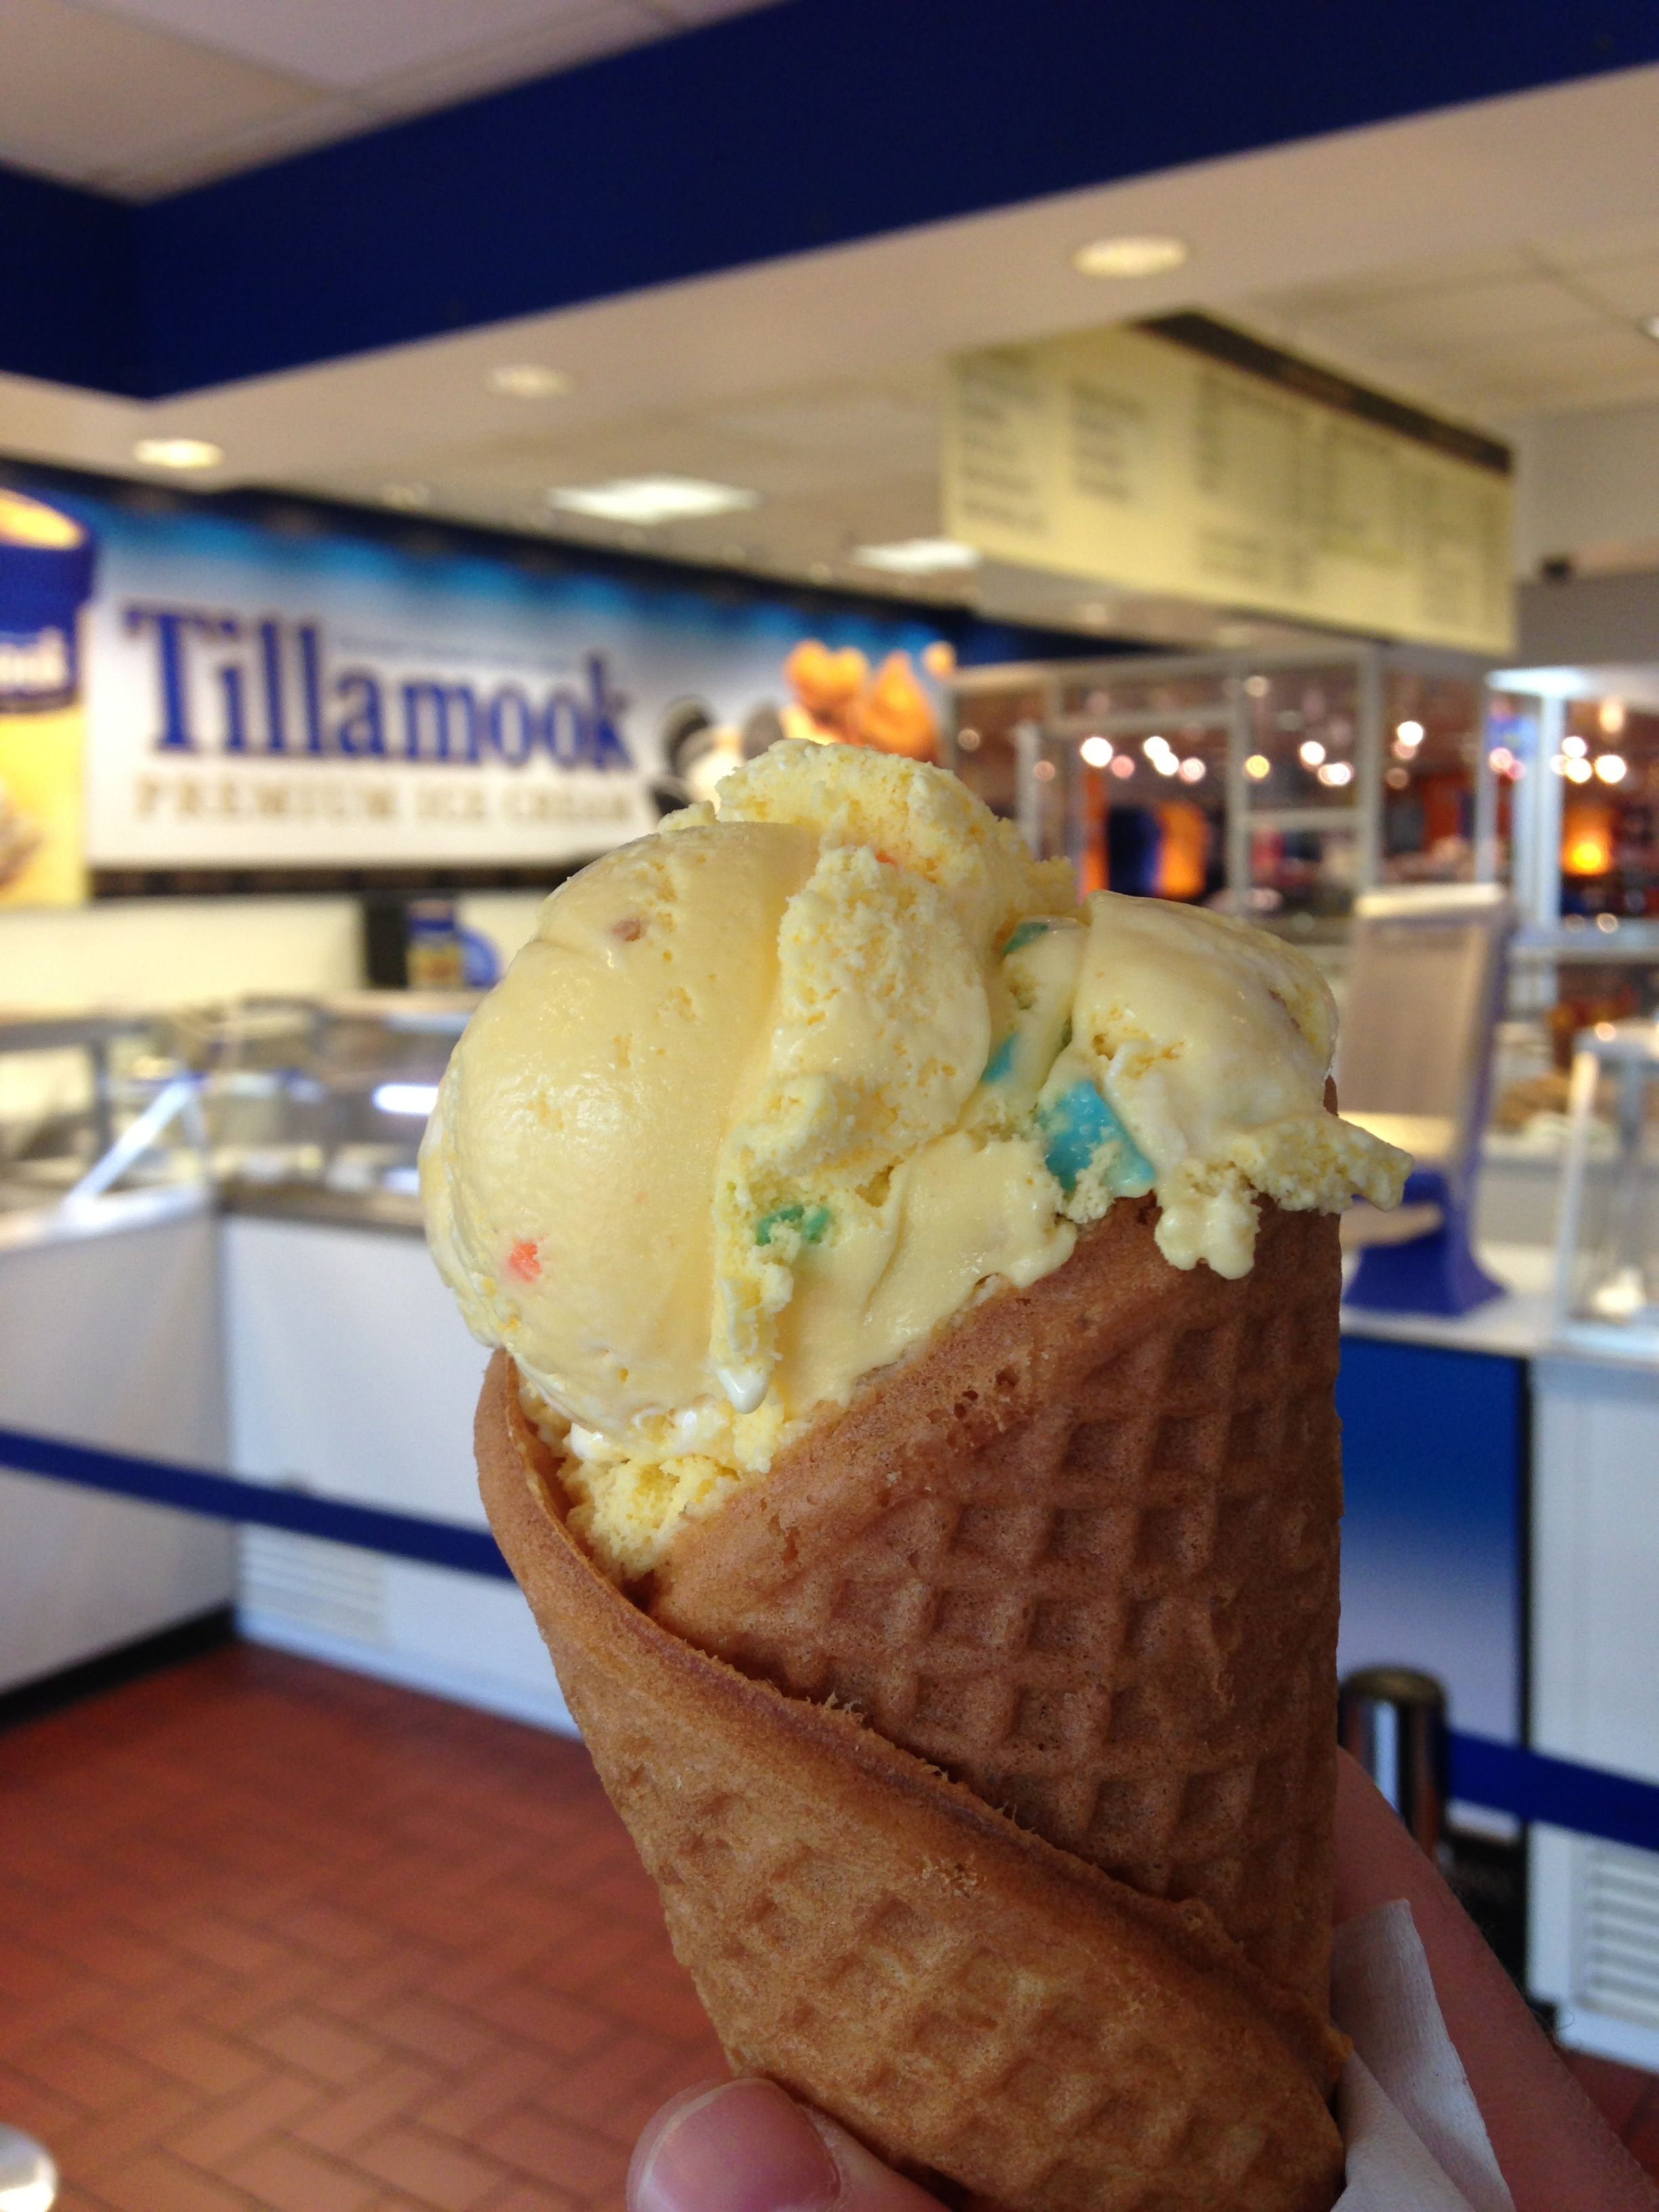 Grandmas Cake Batter Ice Cream From Tillamook